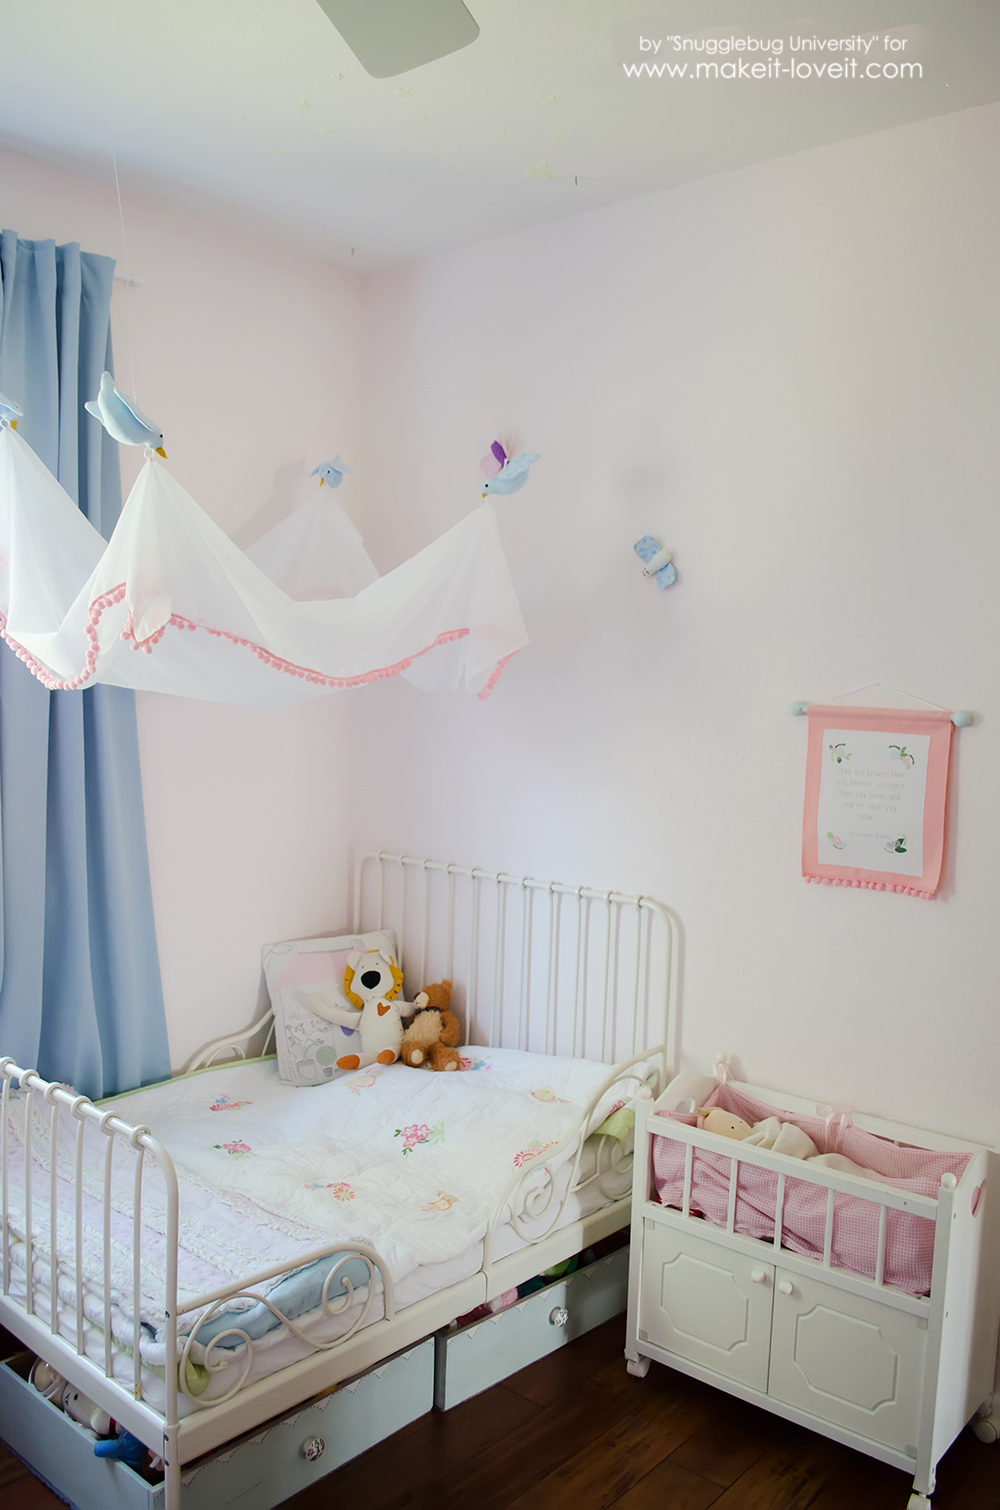 Easy Diy Bird Canopy For Above A Bed Make It And Love It